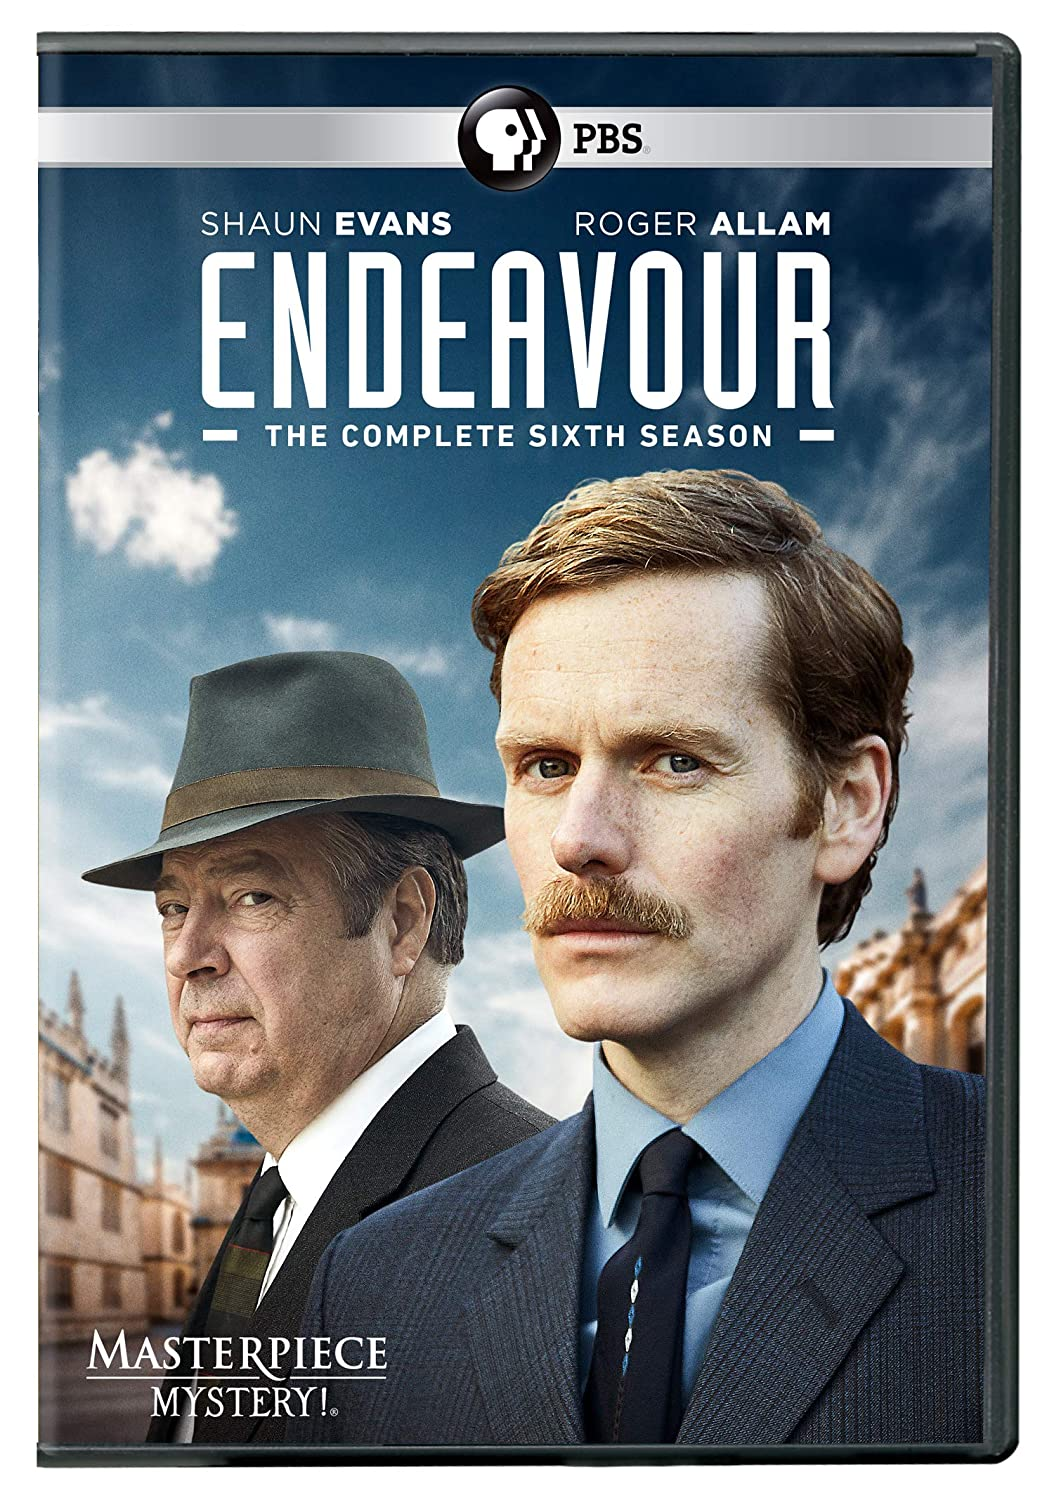 Amazon.com: Masterpiece Mystery!: Endeavour, Season 6 DVD: Shaun ...